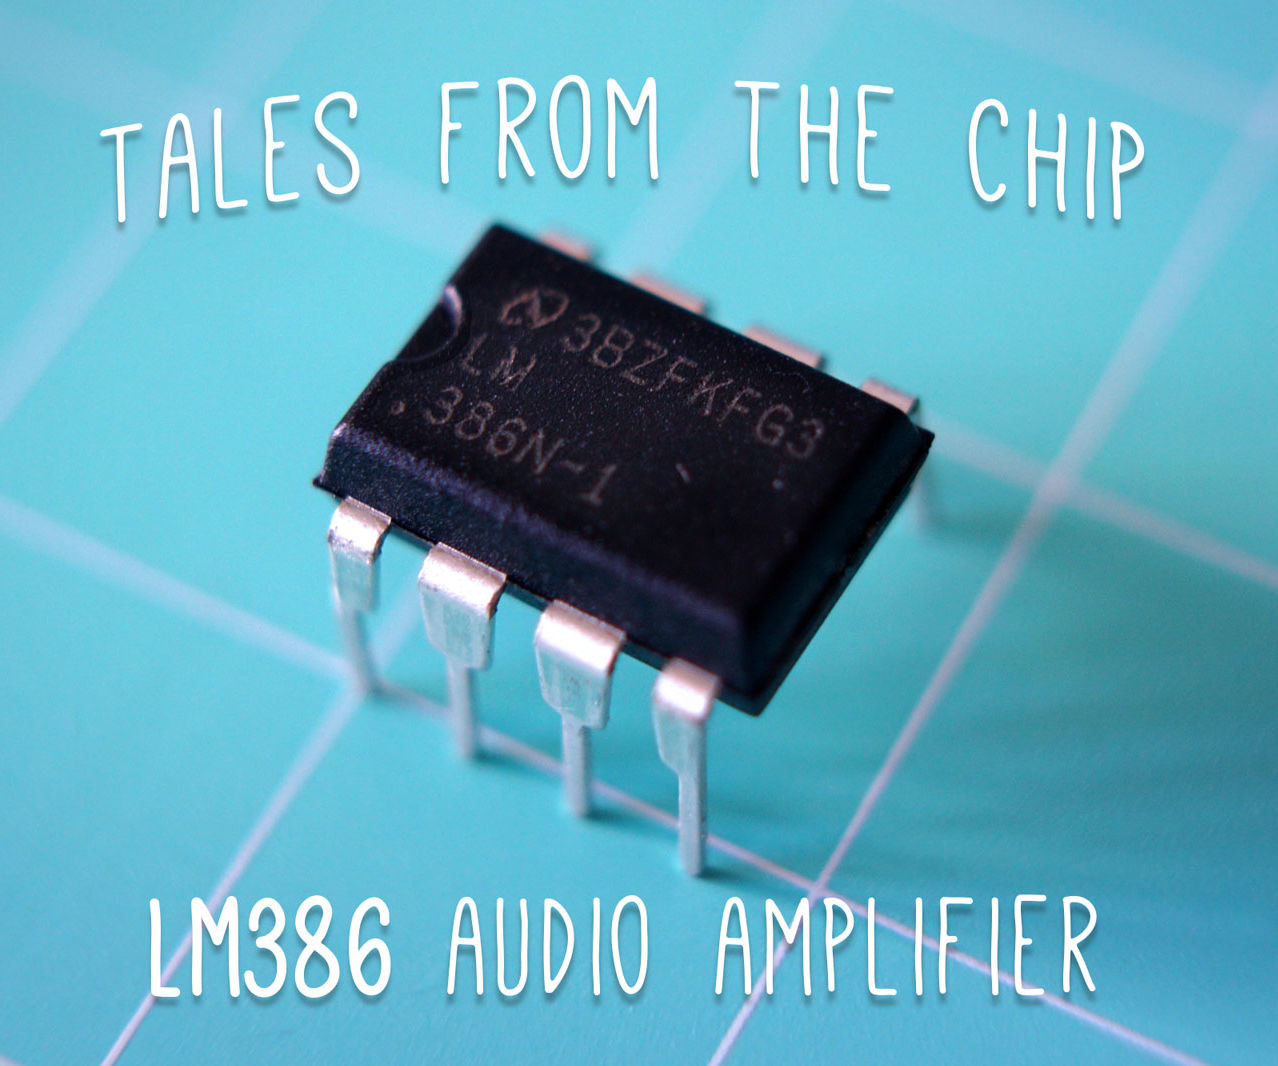 medium resolution of tales from the chip lm386 audio amplifier